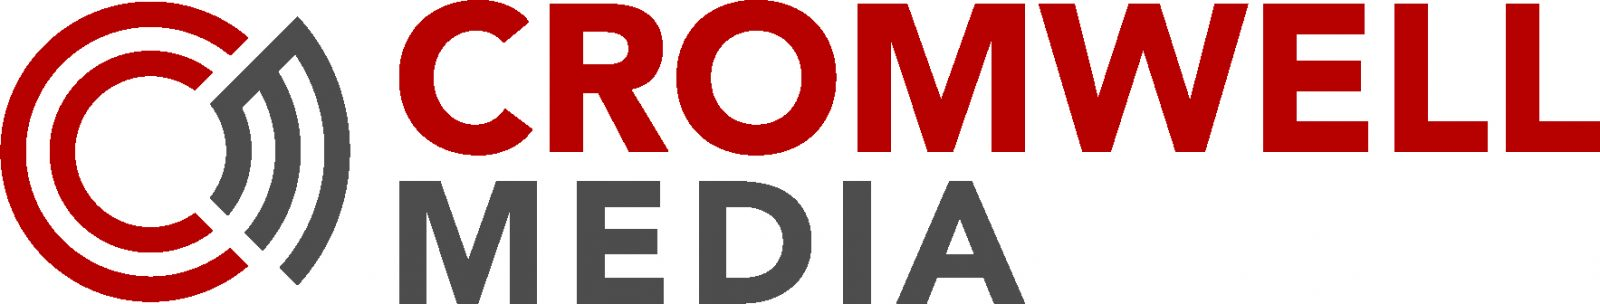 Cromwell Media Jobs | The Game Nashville